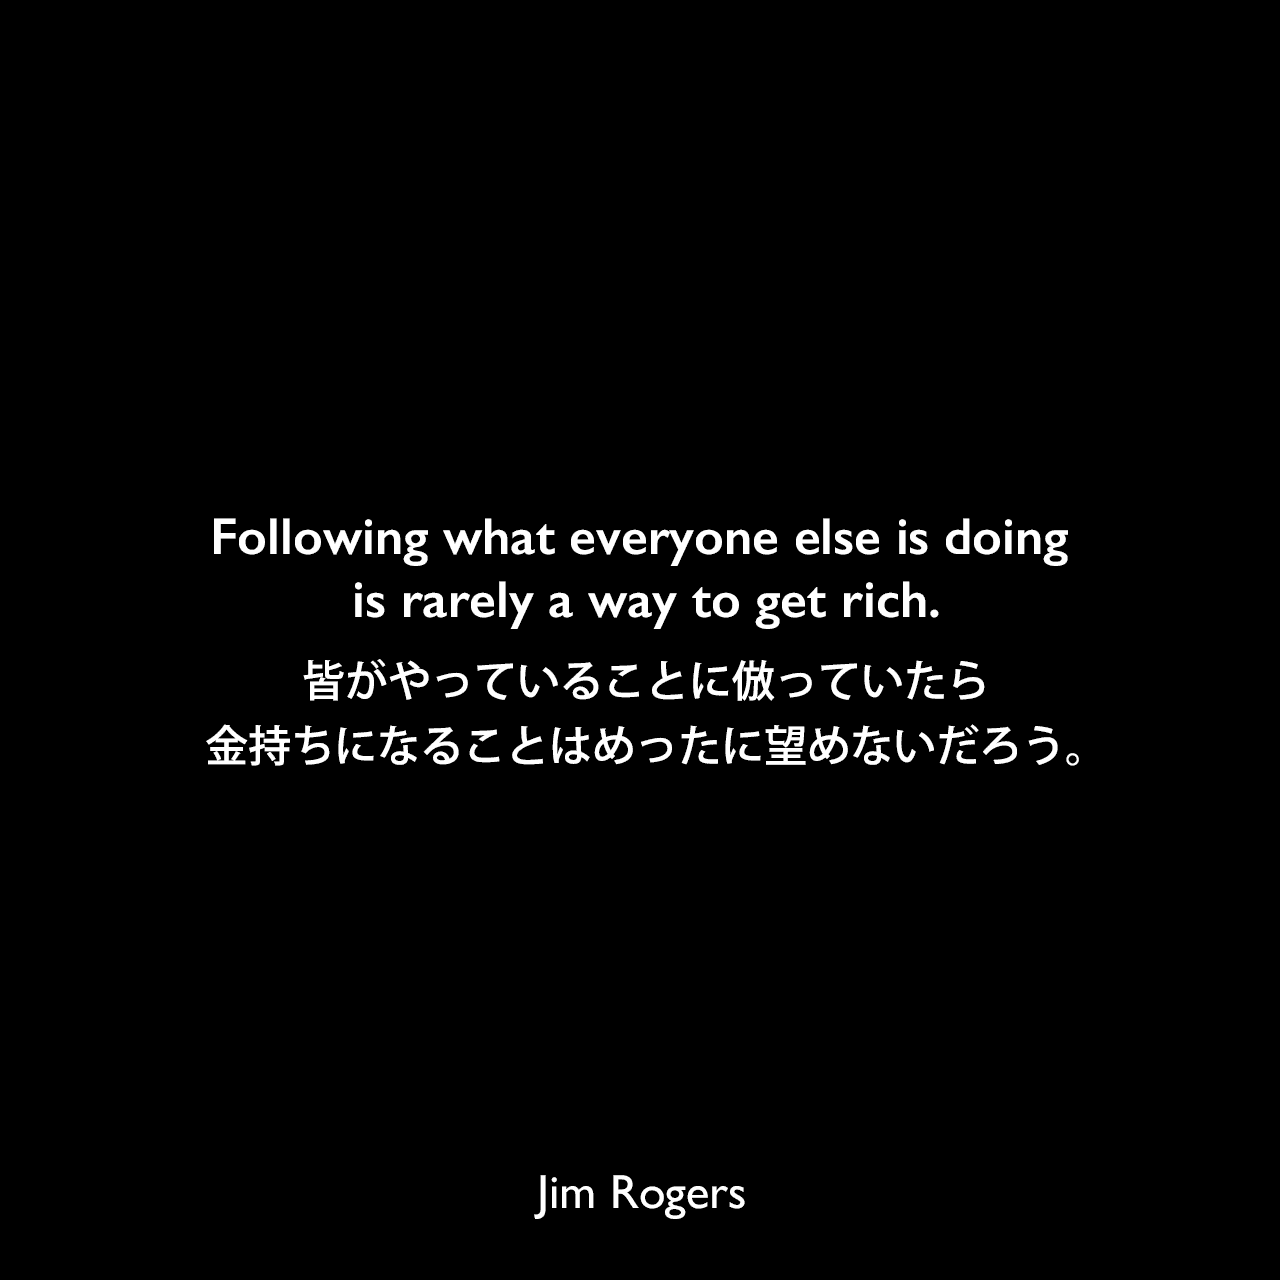 Following what everyone else is doing is rarely a way to get rich.皆がやっていることに倣っていたら金持ちになることはめったに望めないだろう。《参照:A Gift to My Children: A Father's Lessons for Life and Investing(2009)》Jim Rogers